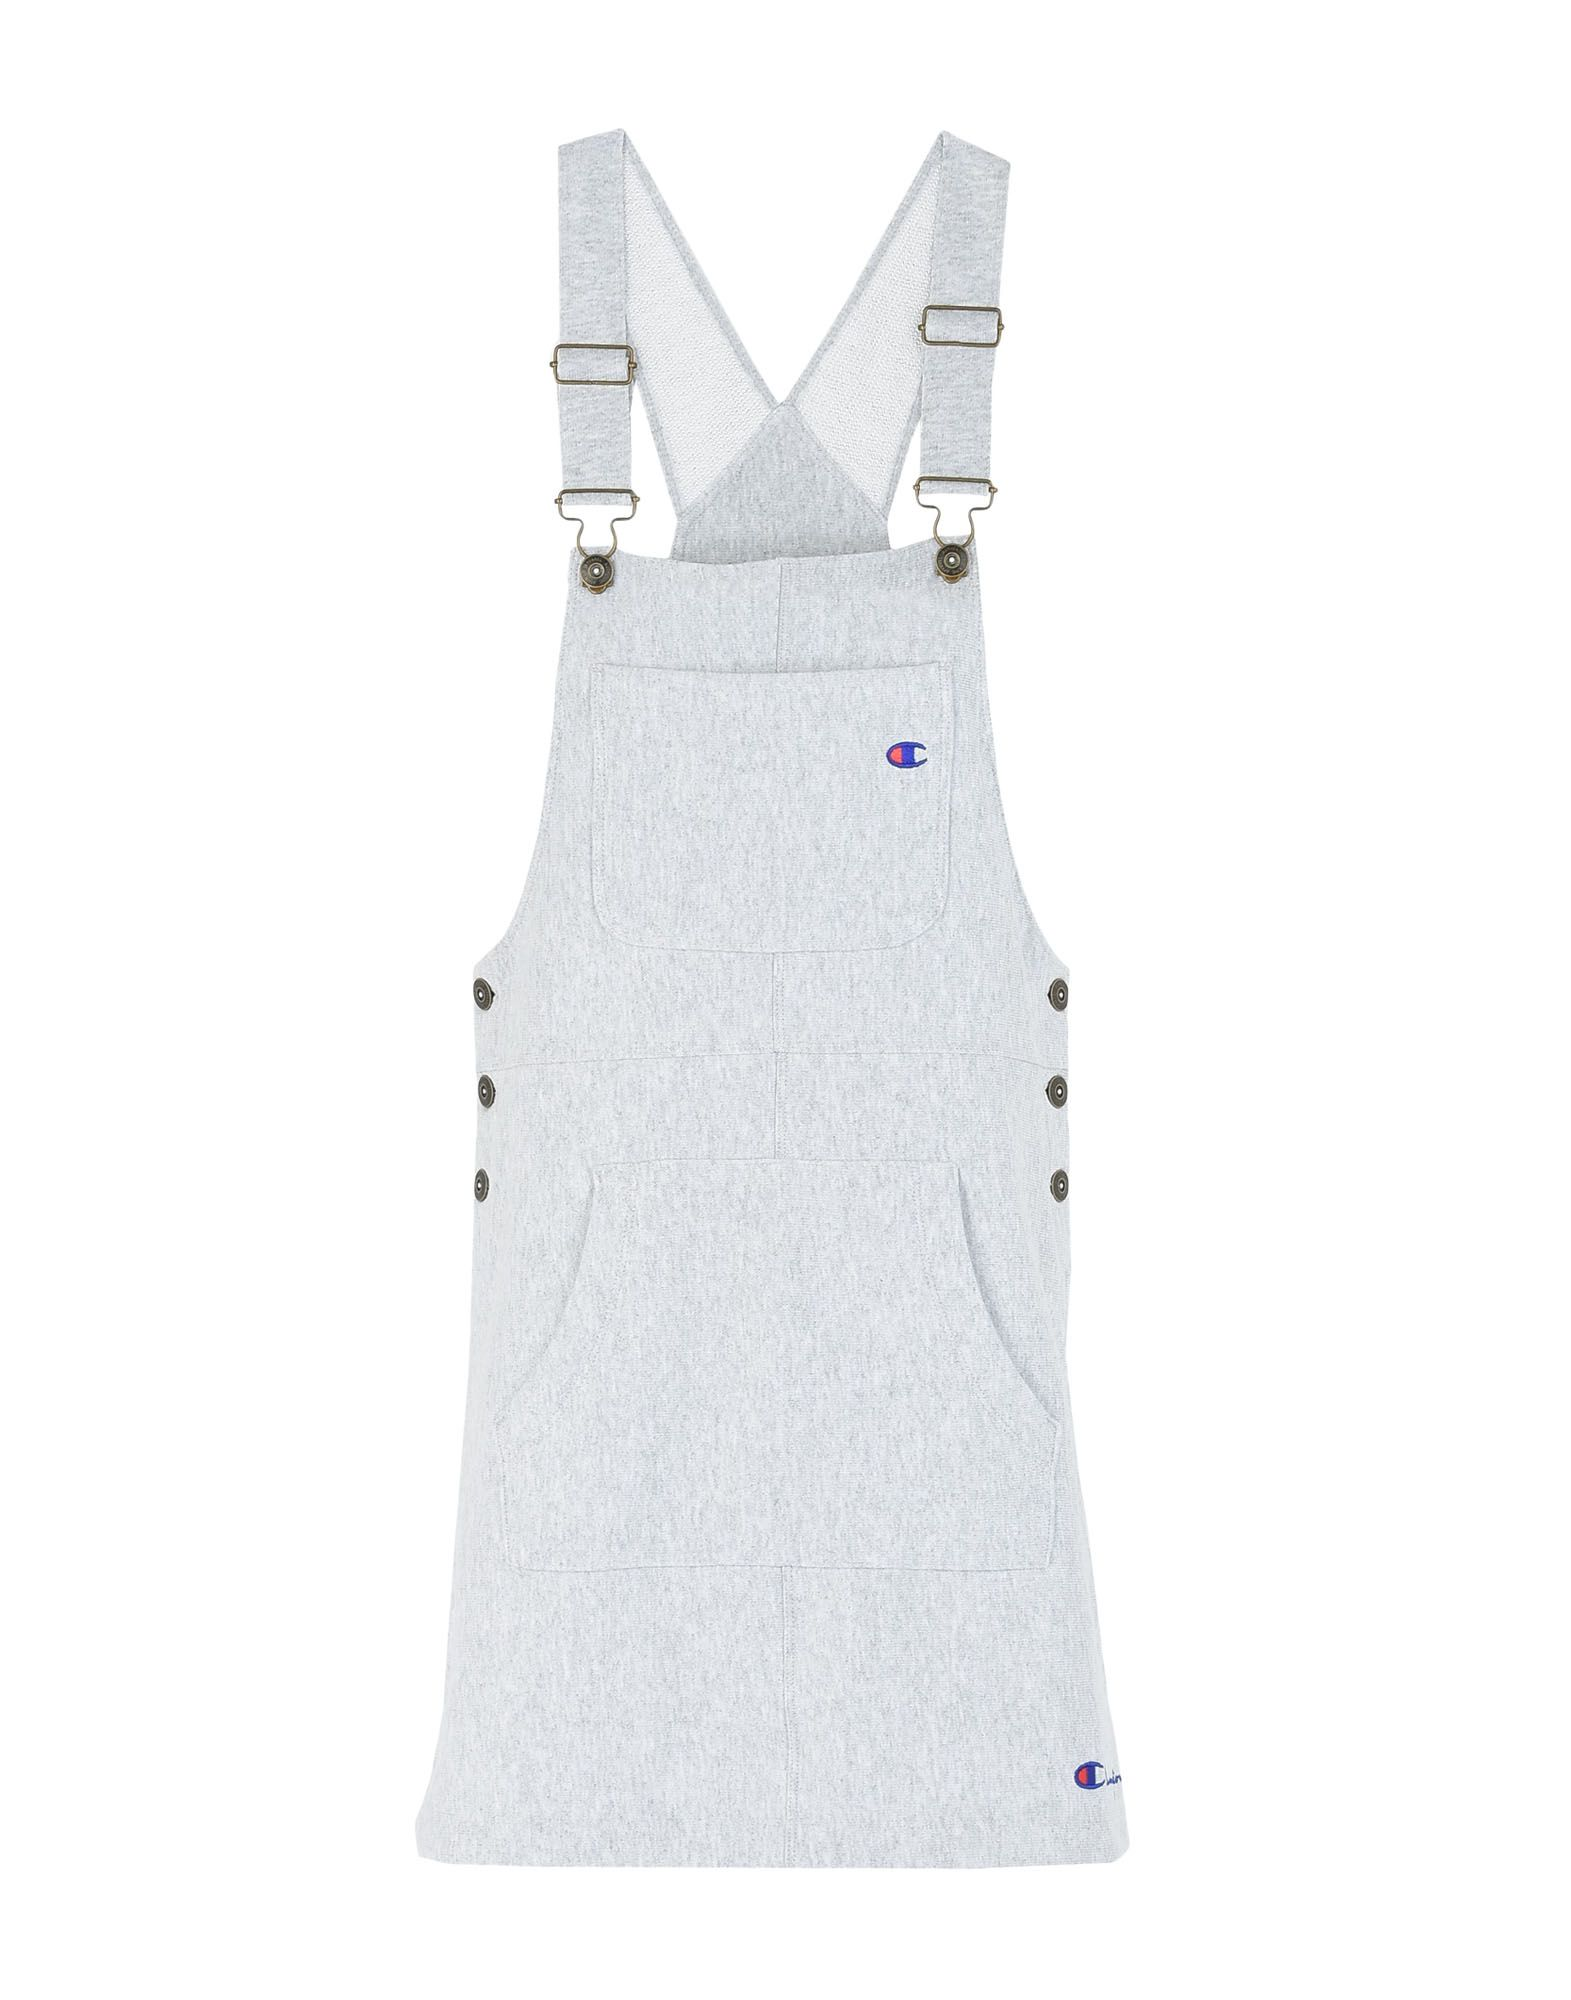 Tuta/One Piece Champion Reverse Weave Small C Logo Salopette - Donna - Acquista online su znQKhr